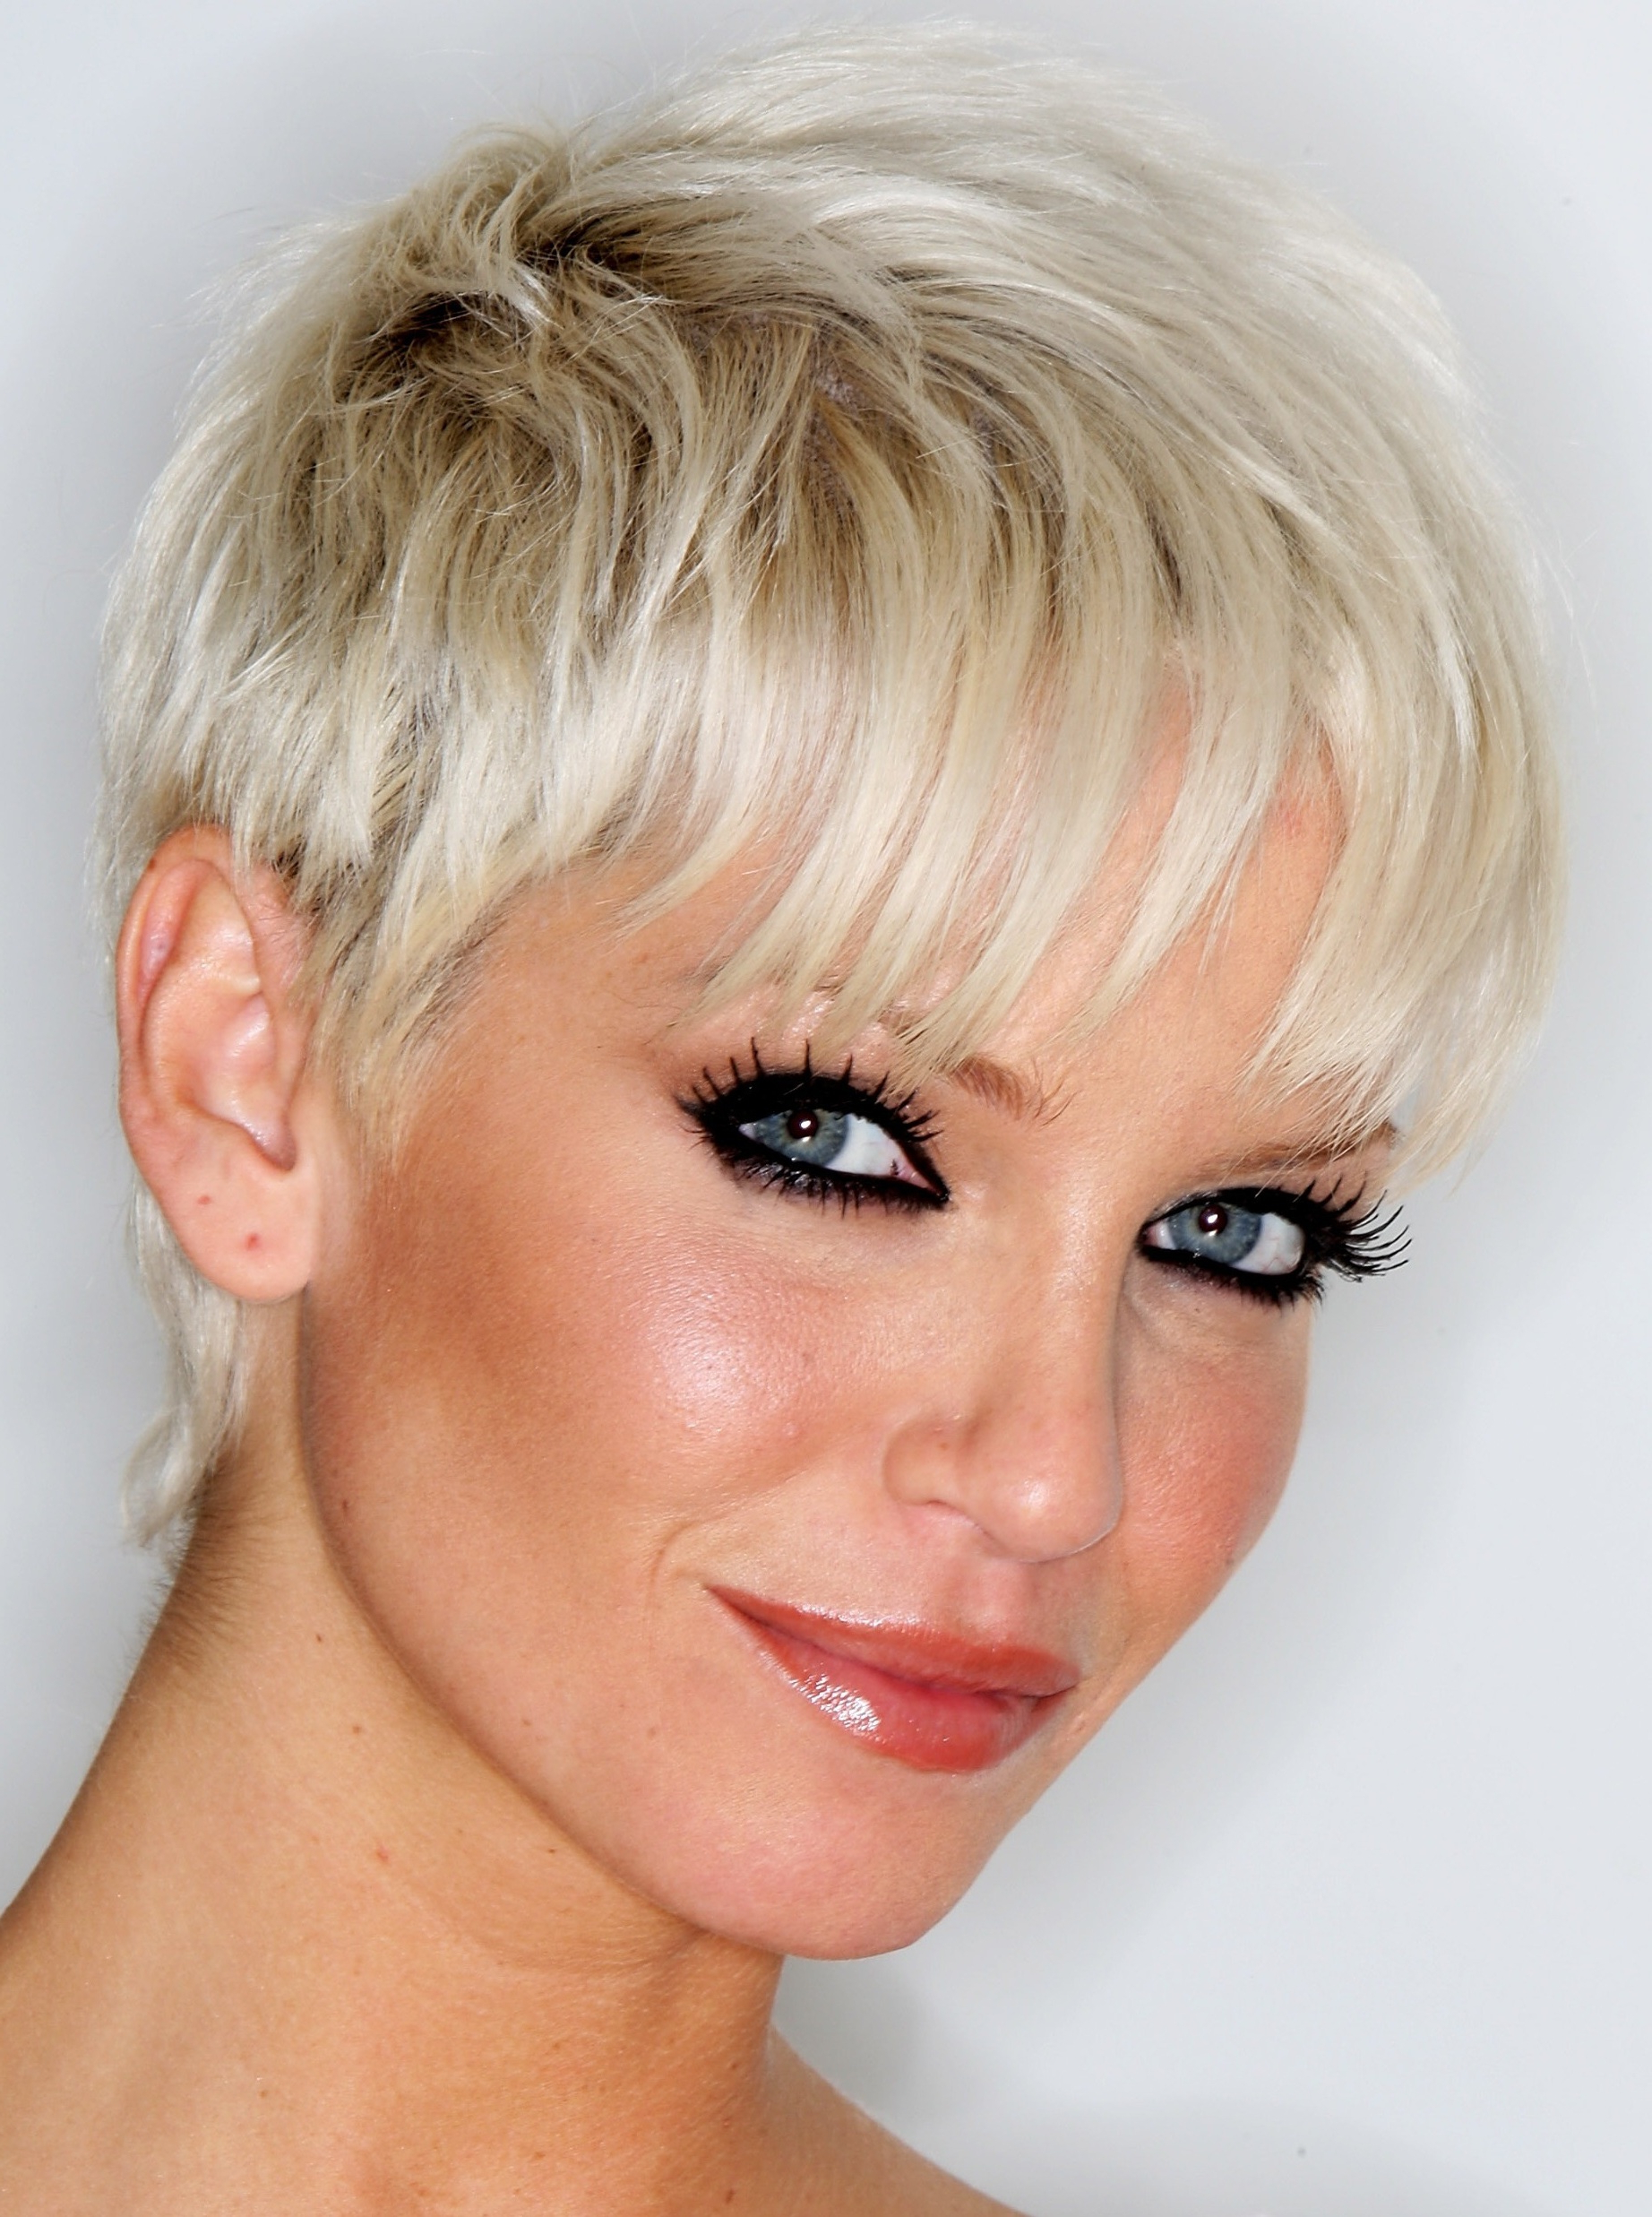 29 Common Myths About Platinum Blonde Short Hair | Platinum Blonde Inside Platinum Blonde Short Hairstyles (View 22 of 25)